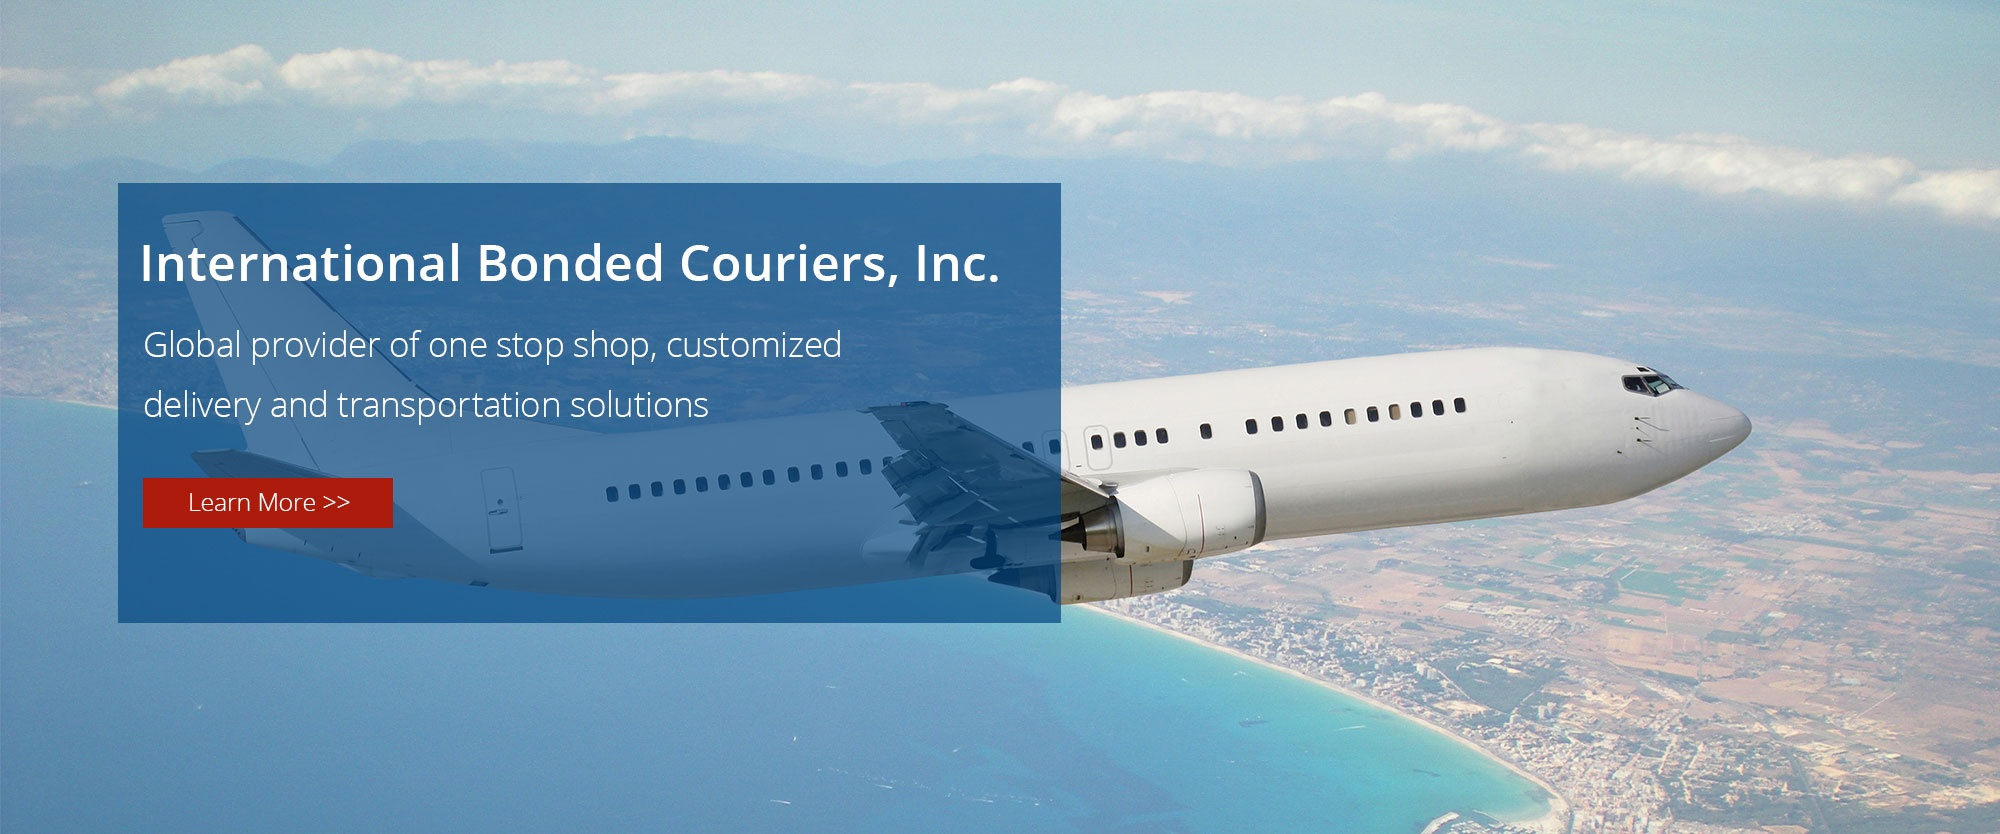 International Bonded Couriers, Inc. IBC